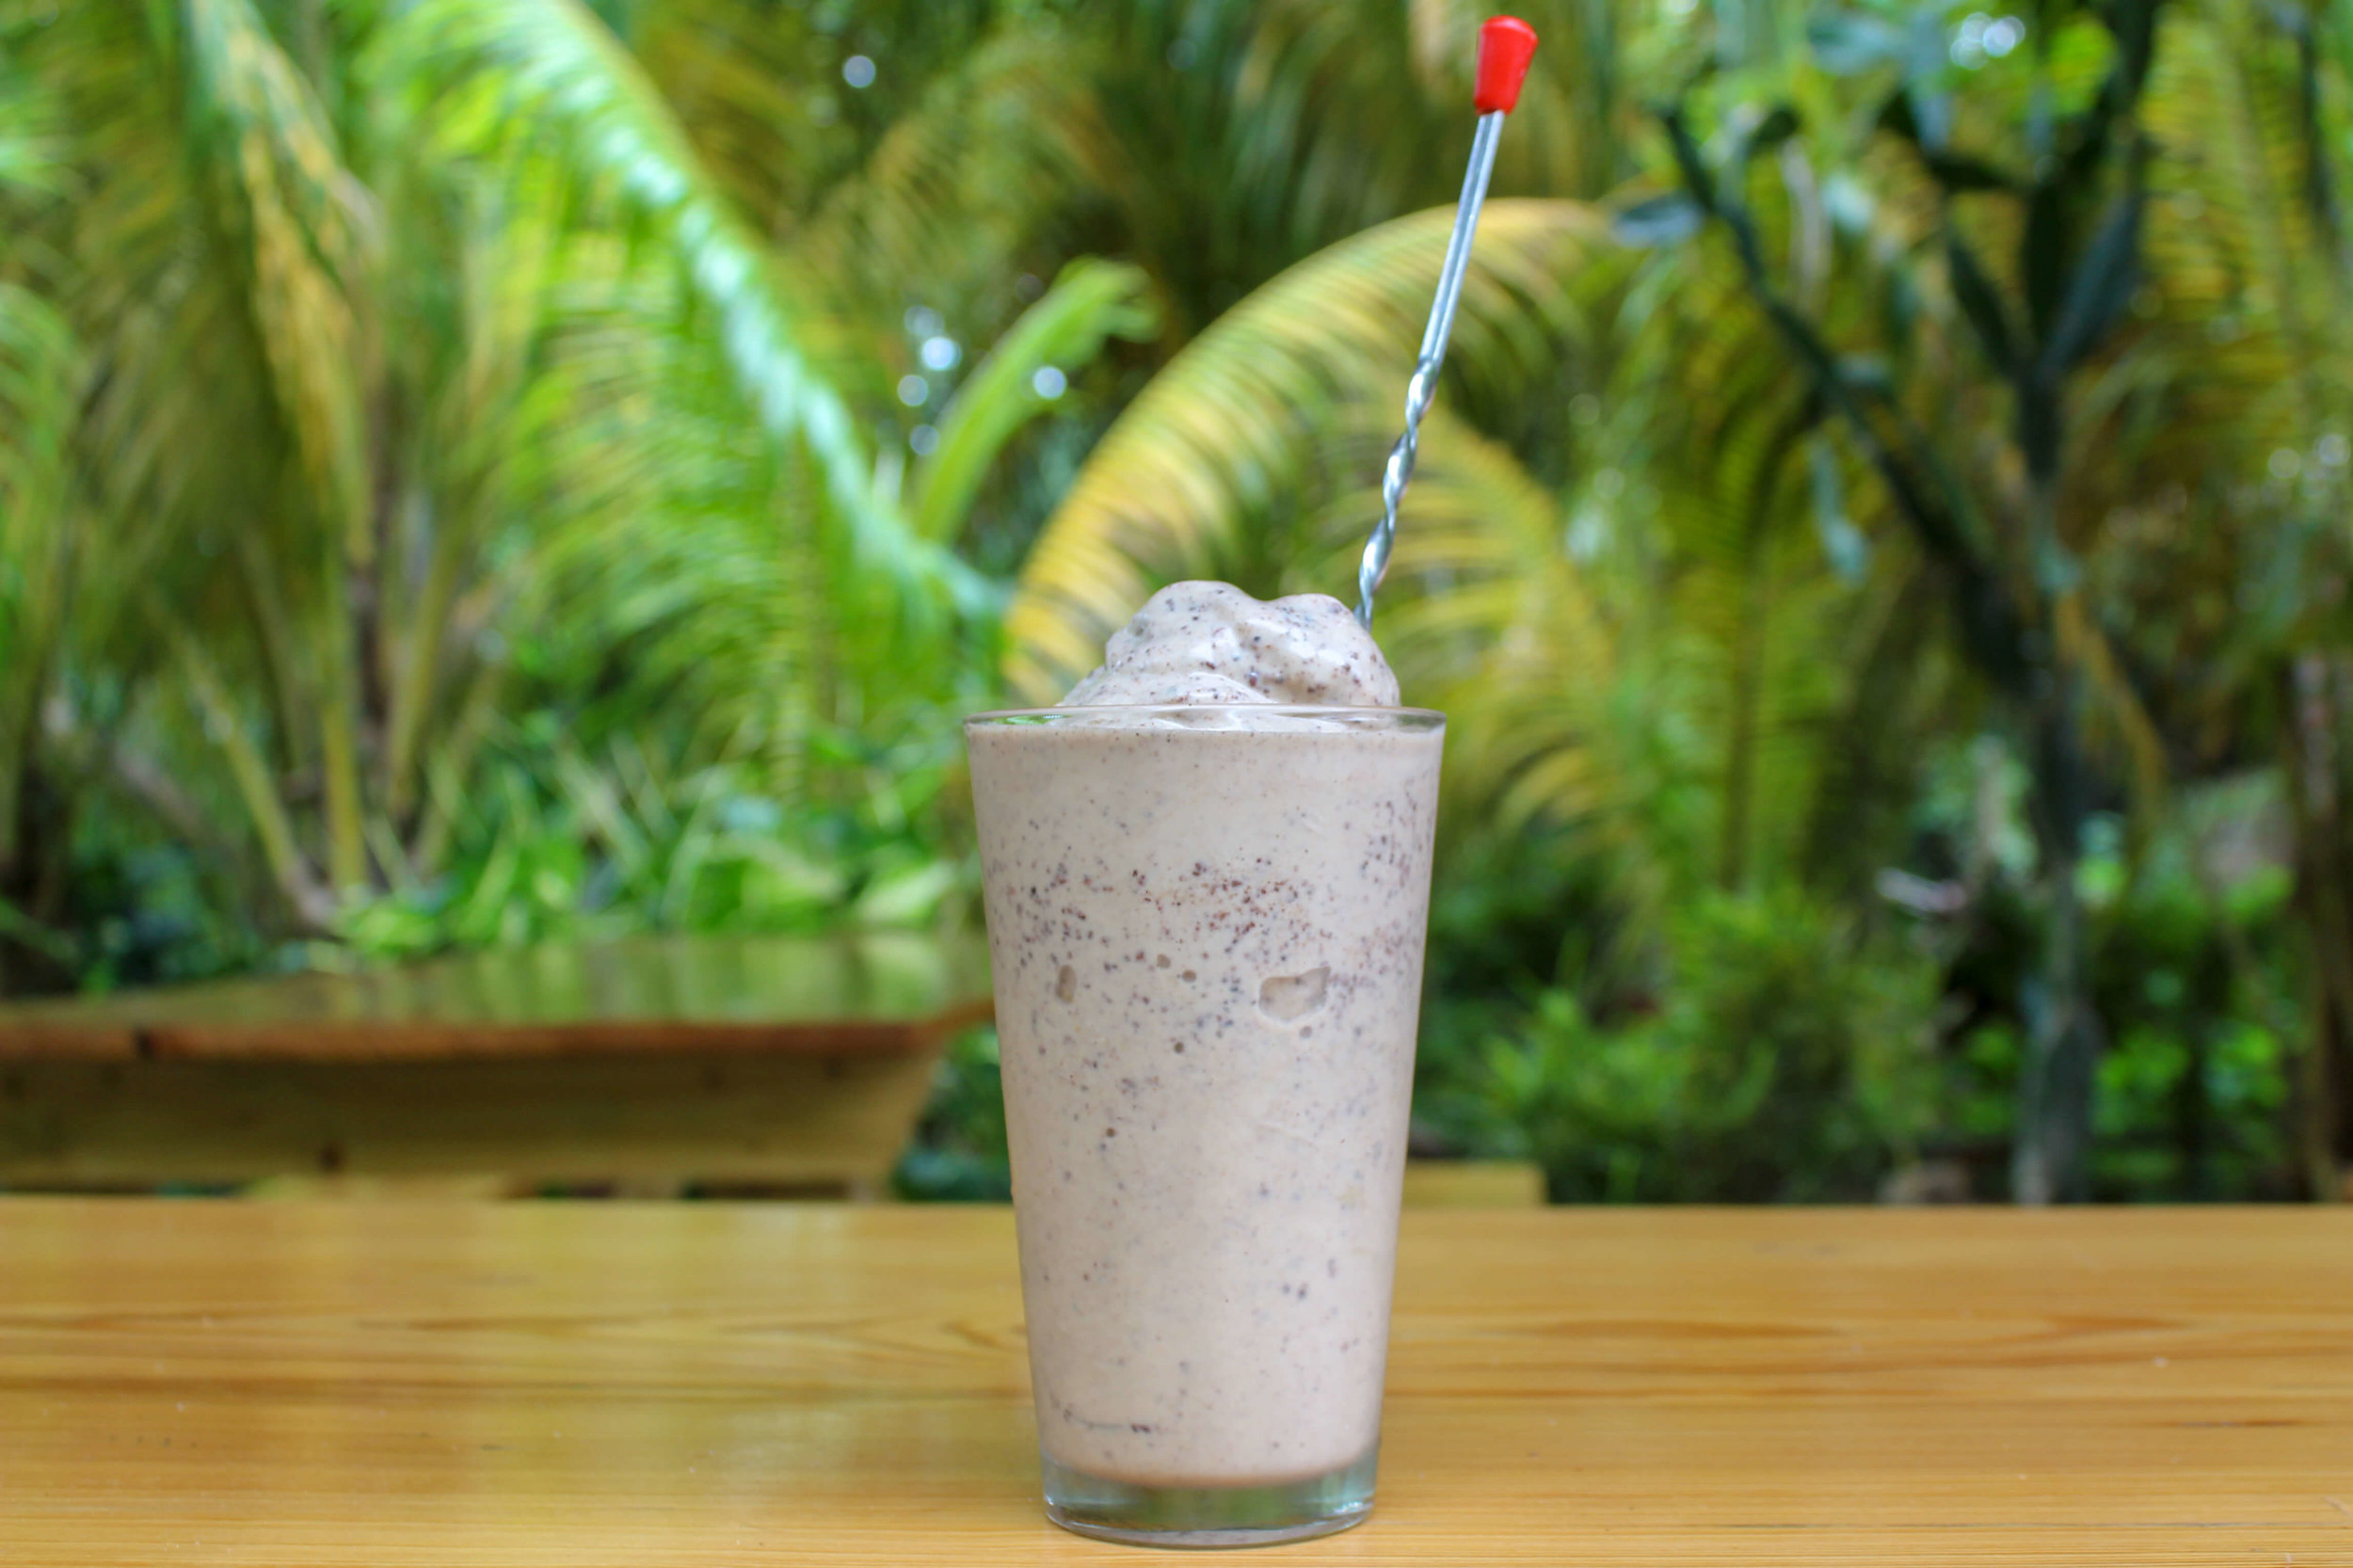 the famous Funky Monkey smoothie